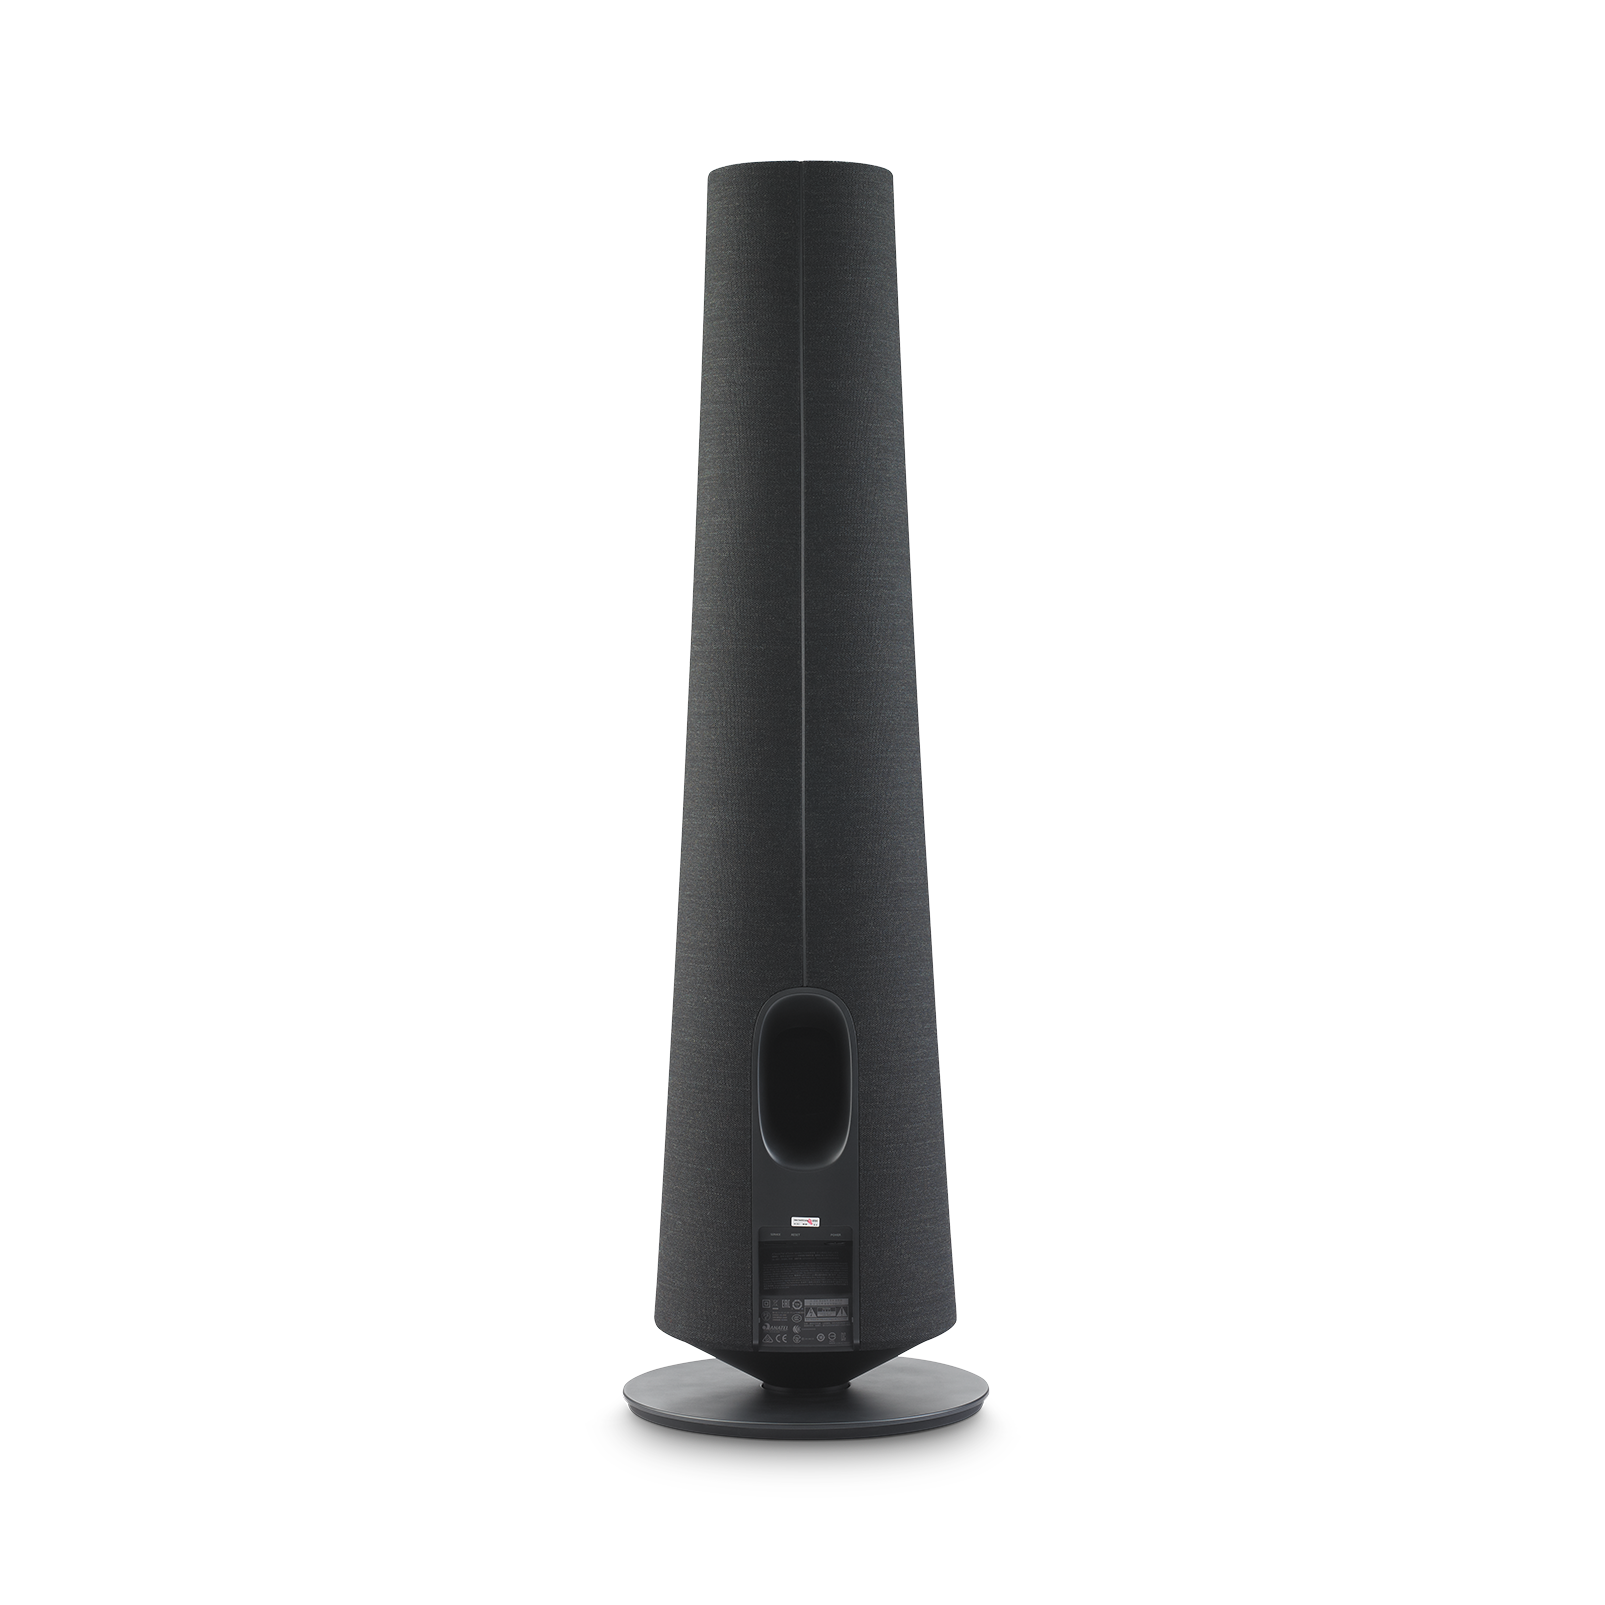 Harman Kardon Citation Tower - Black - Smart Premium Floorstanding Speaker that delivers an impactful performance - Back